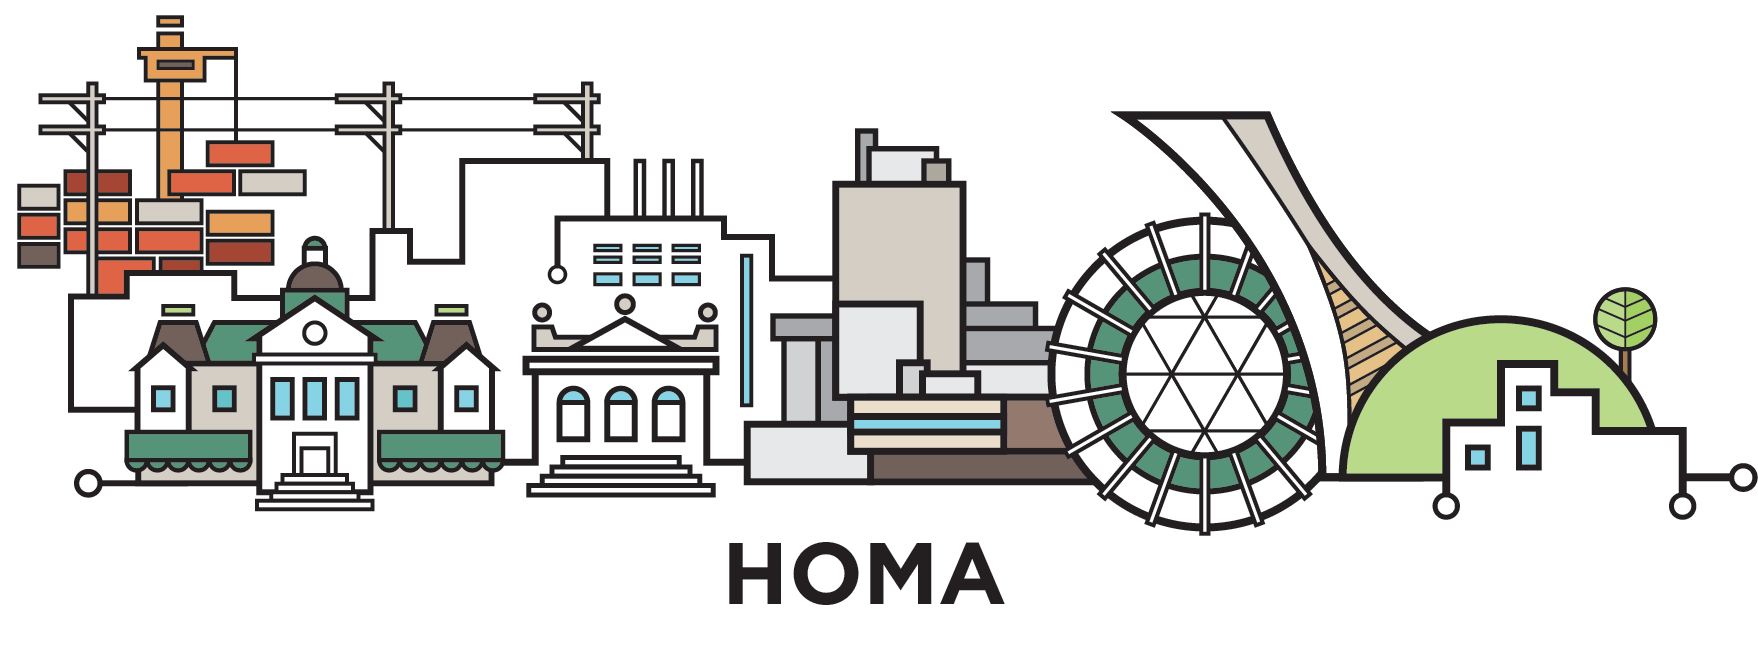 mtl-homa-cityline-illustration-by-loogart